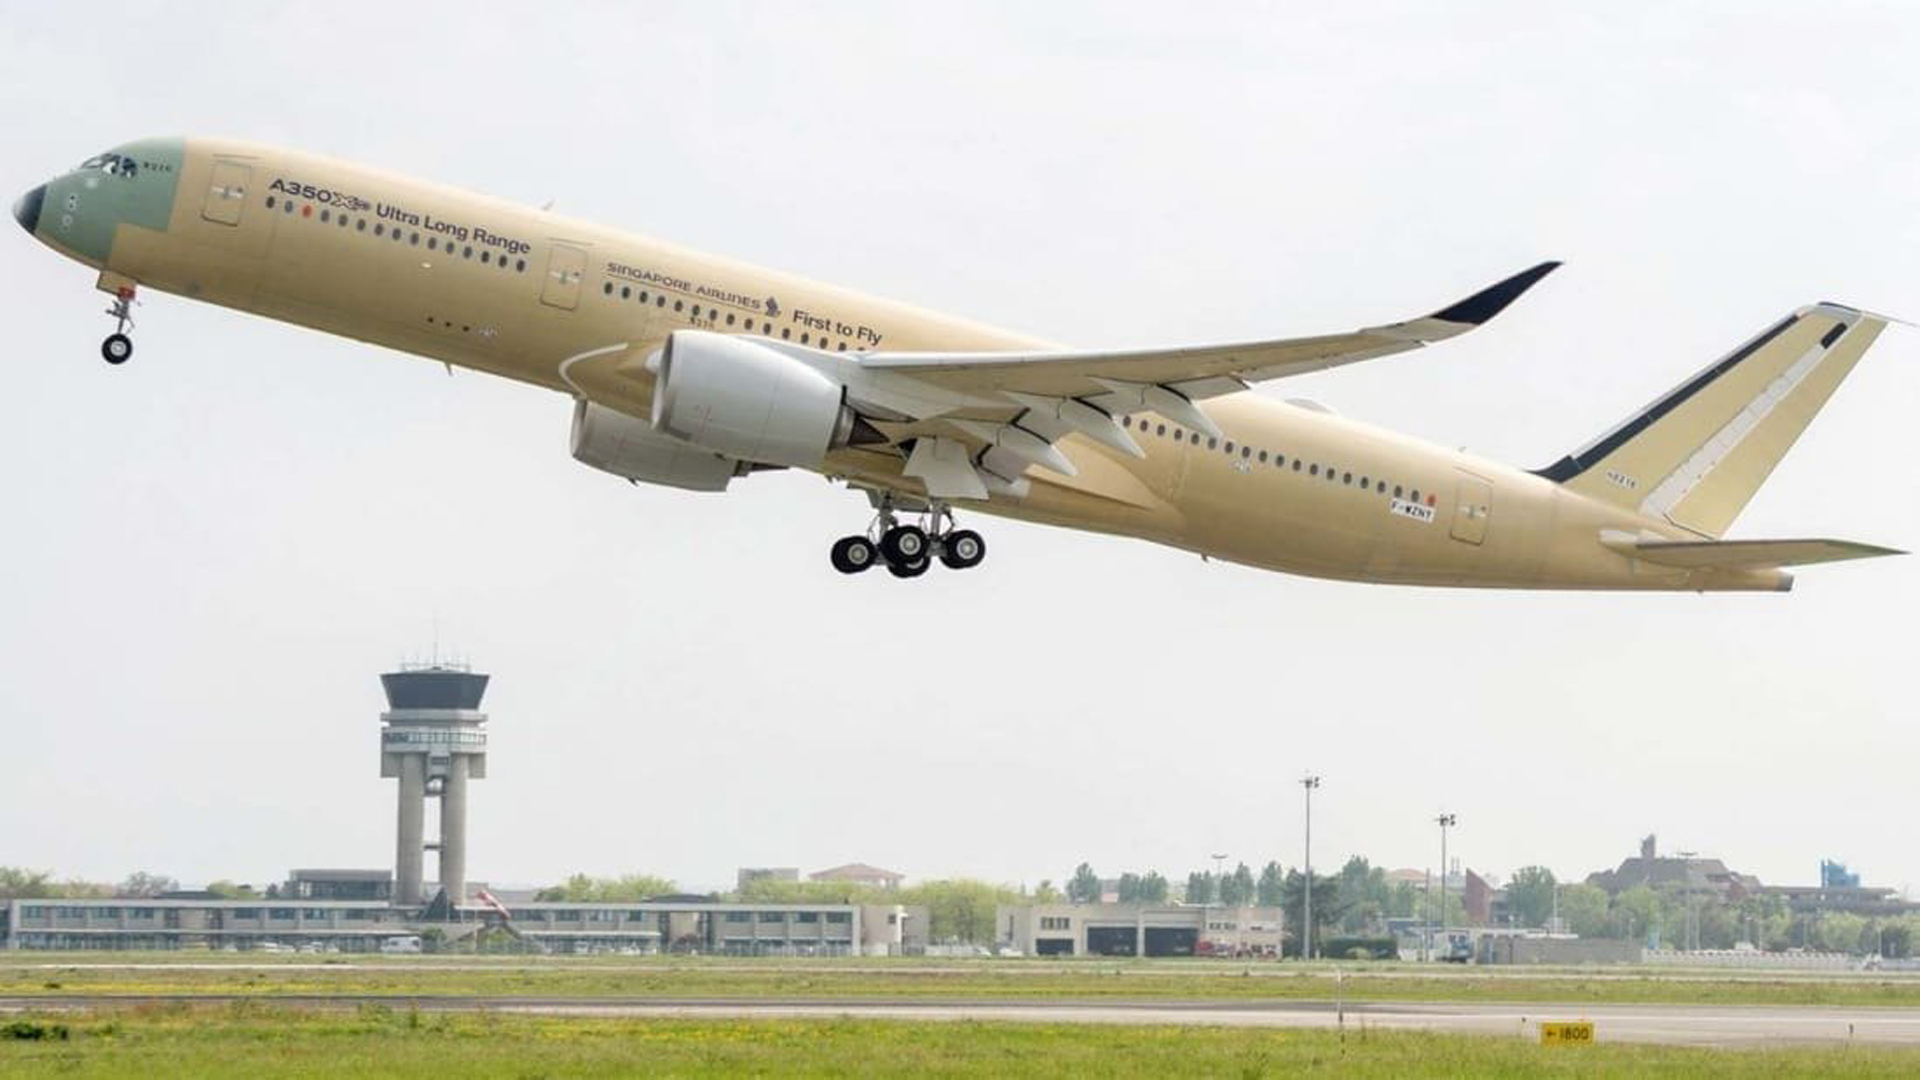 By the end of 2018, Singapore Airlines new Airbus A350-900ULR will go into service between Singapore and New York. The 20-hour trip will become the world's longest non-stop flight route. (Credit: Airbus)